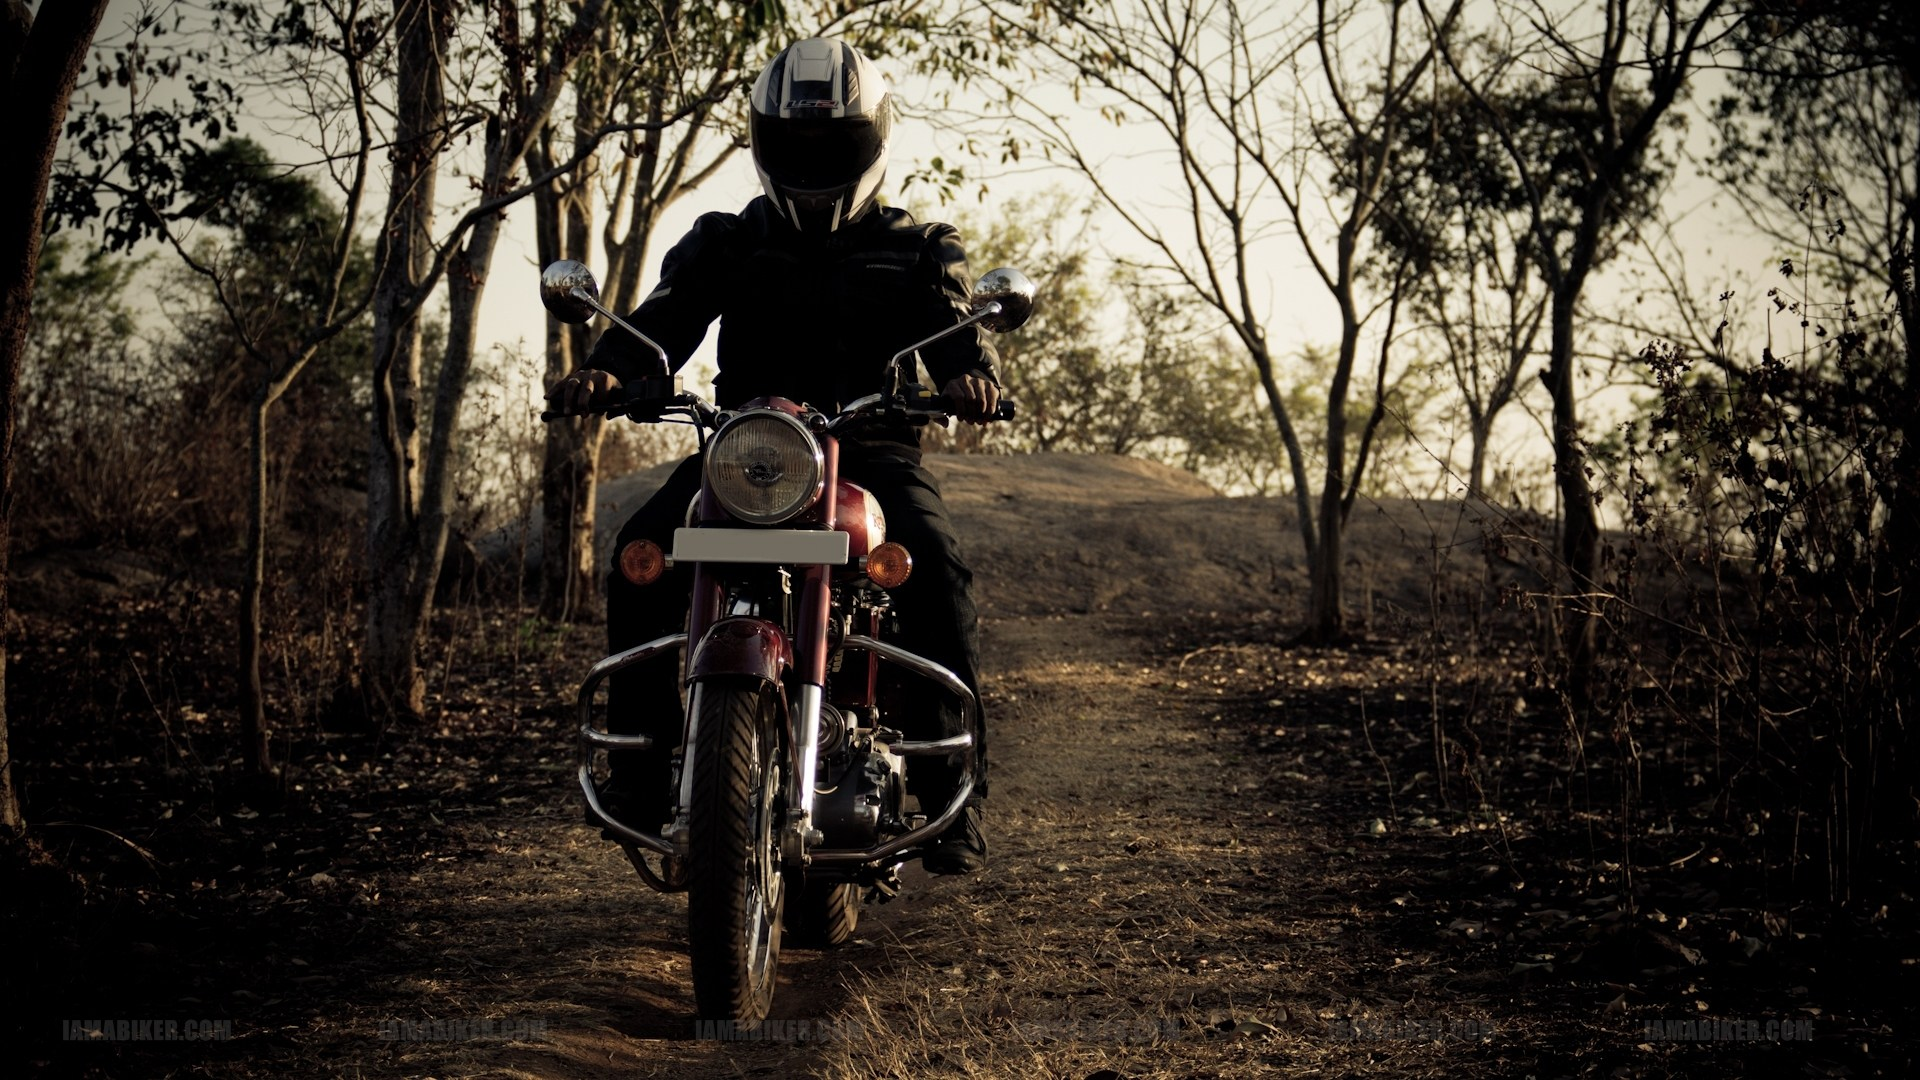 Fall Out Boy Phone Wallpapers Download Royal Enfield Classic 350 Black Hd Wallpaper Gallery